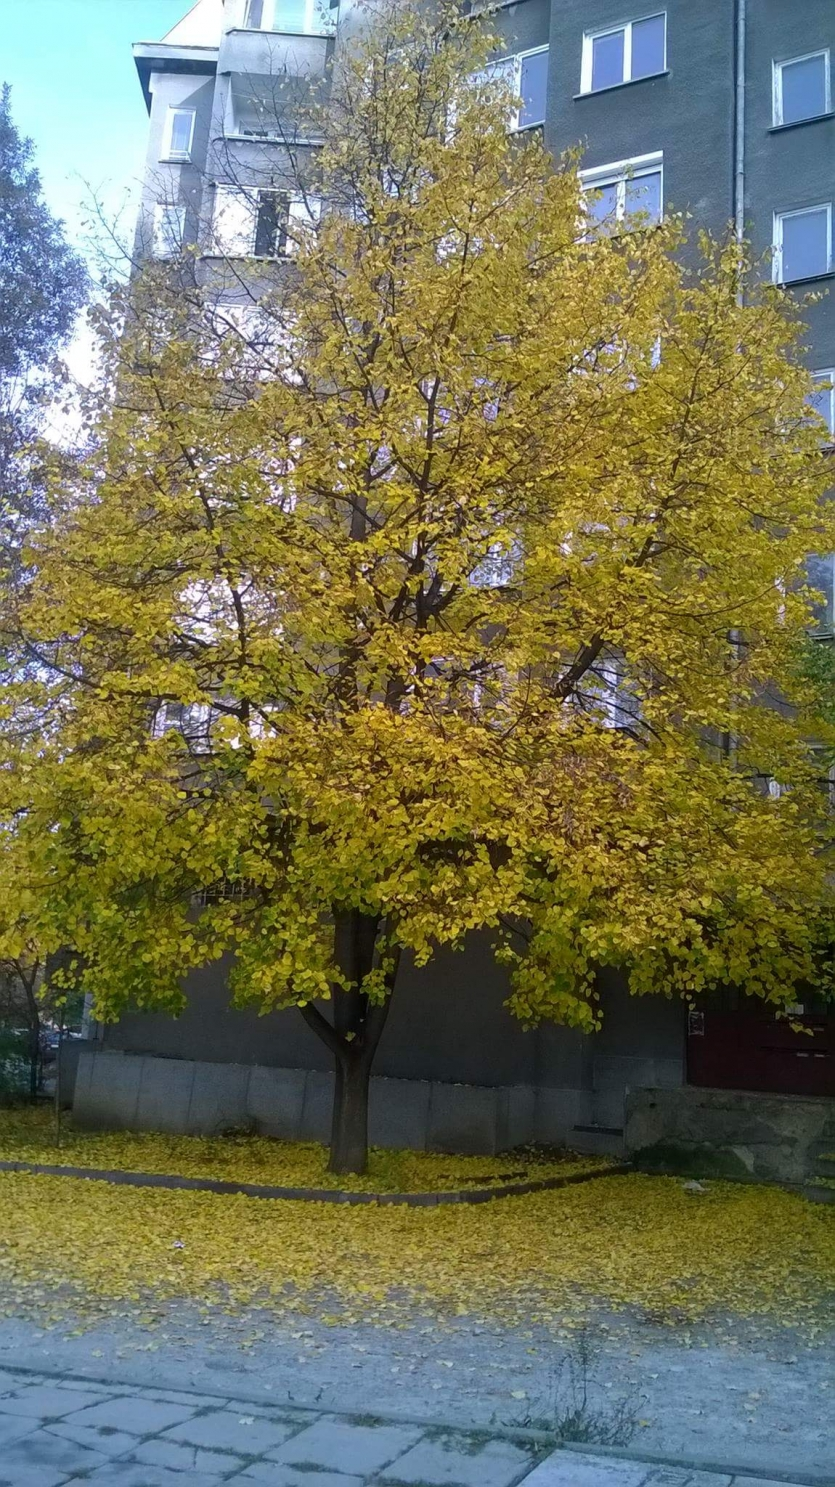 A golden tree in the city.